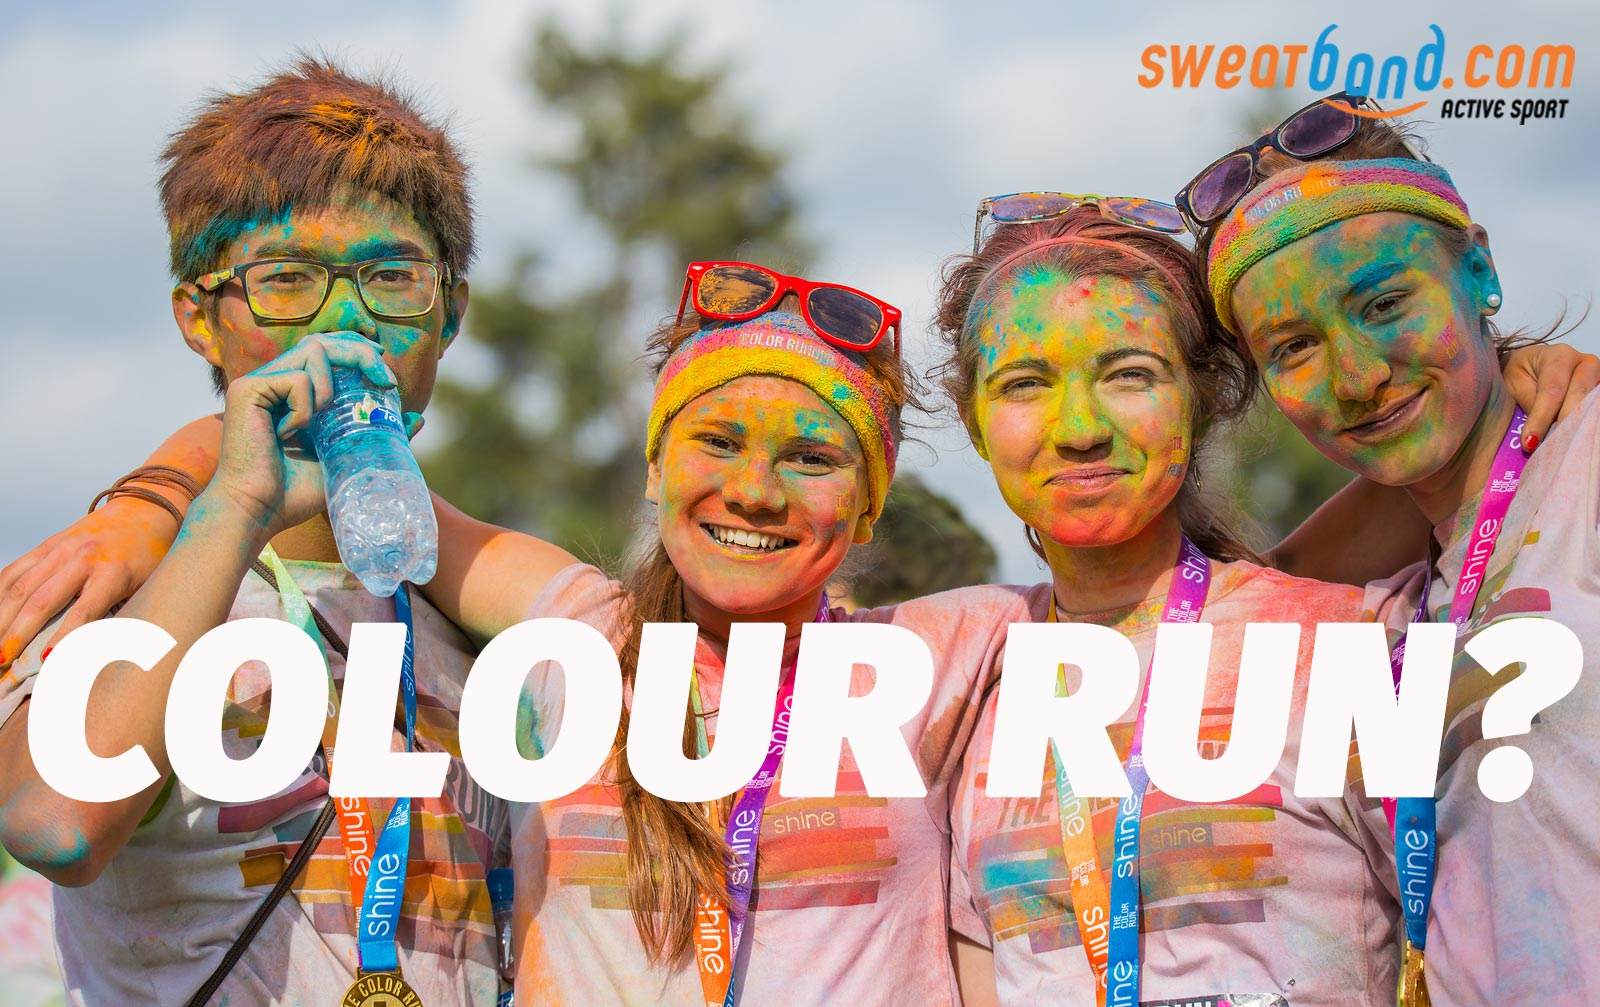 Outdoor exercise events are becoming ever more popular. Will you try one out in 2016? How cool does a colour run look!